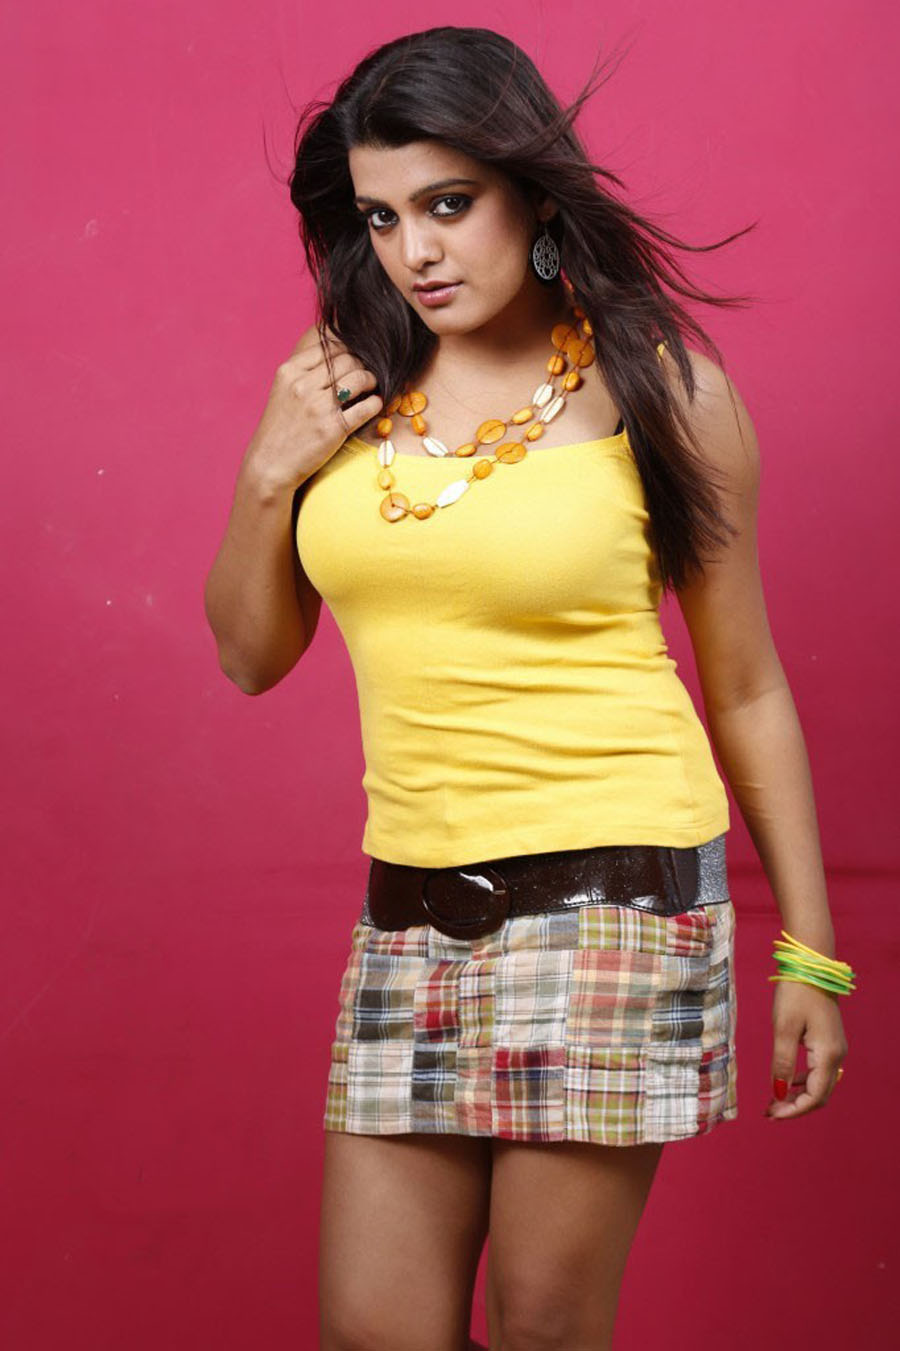 Actress tashu kaushik hot spicy photshoot stills